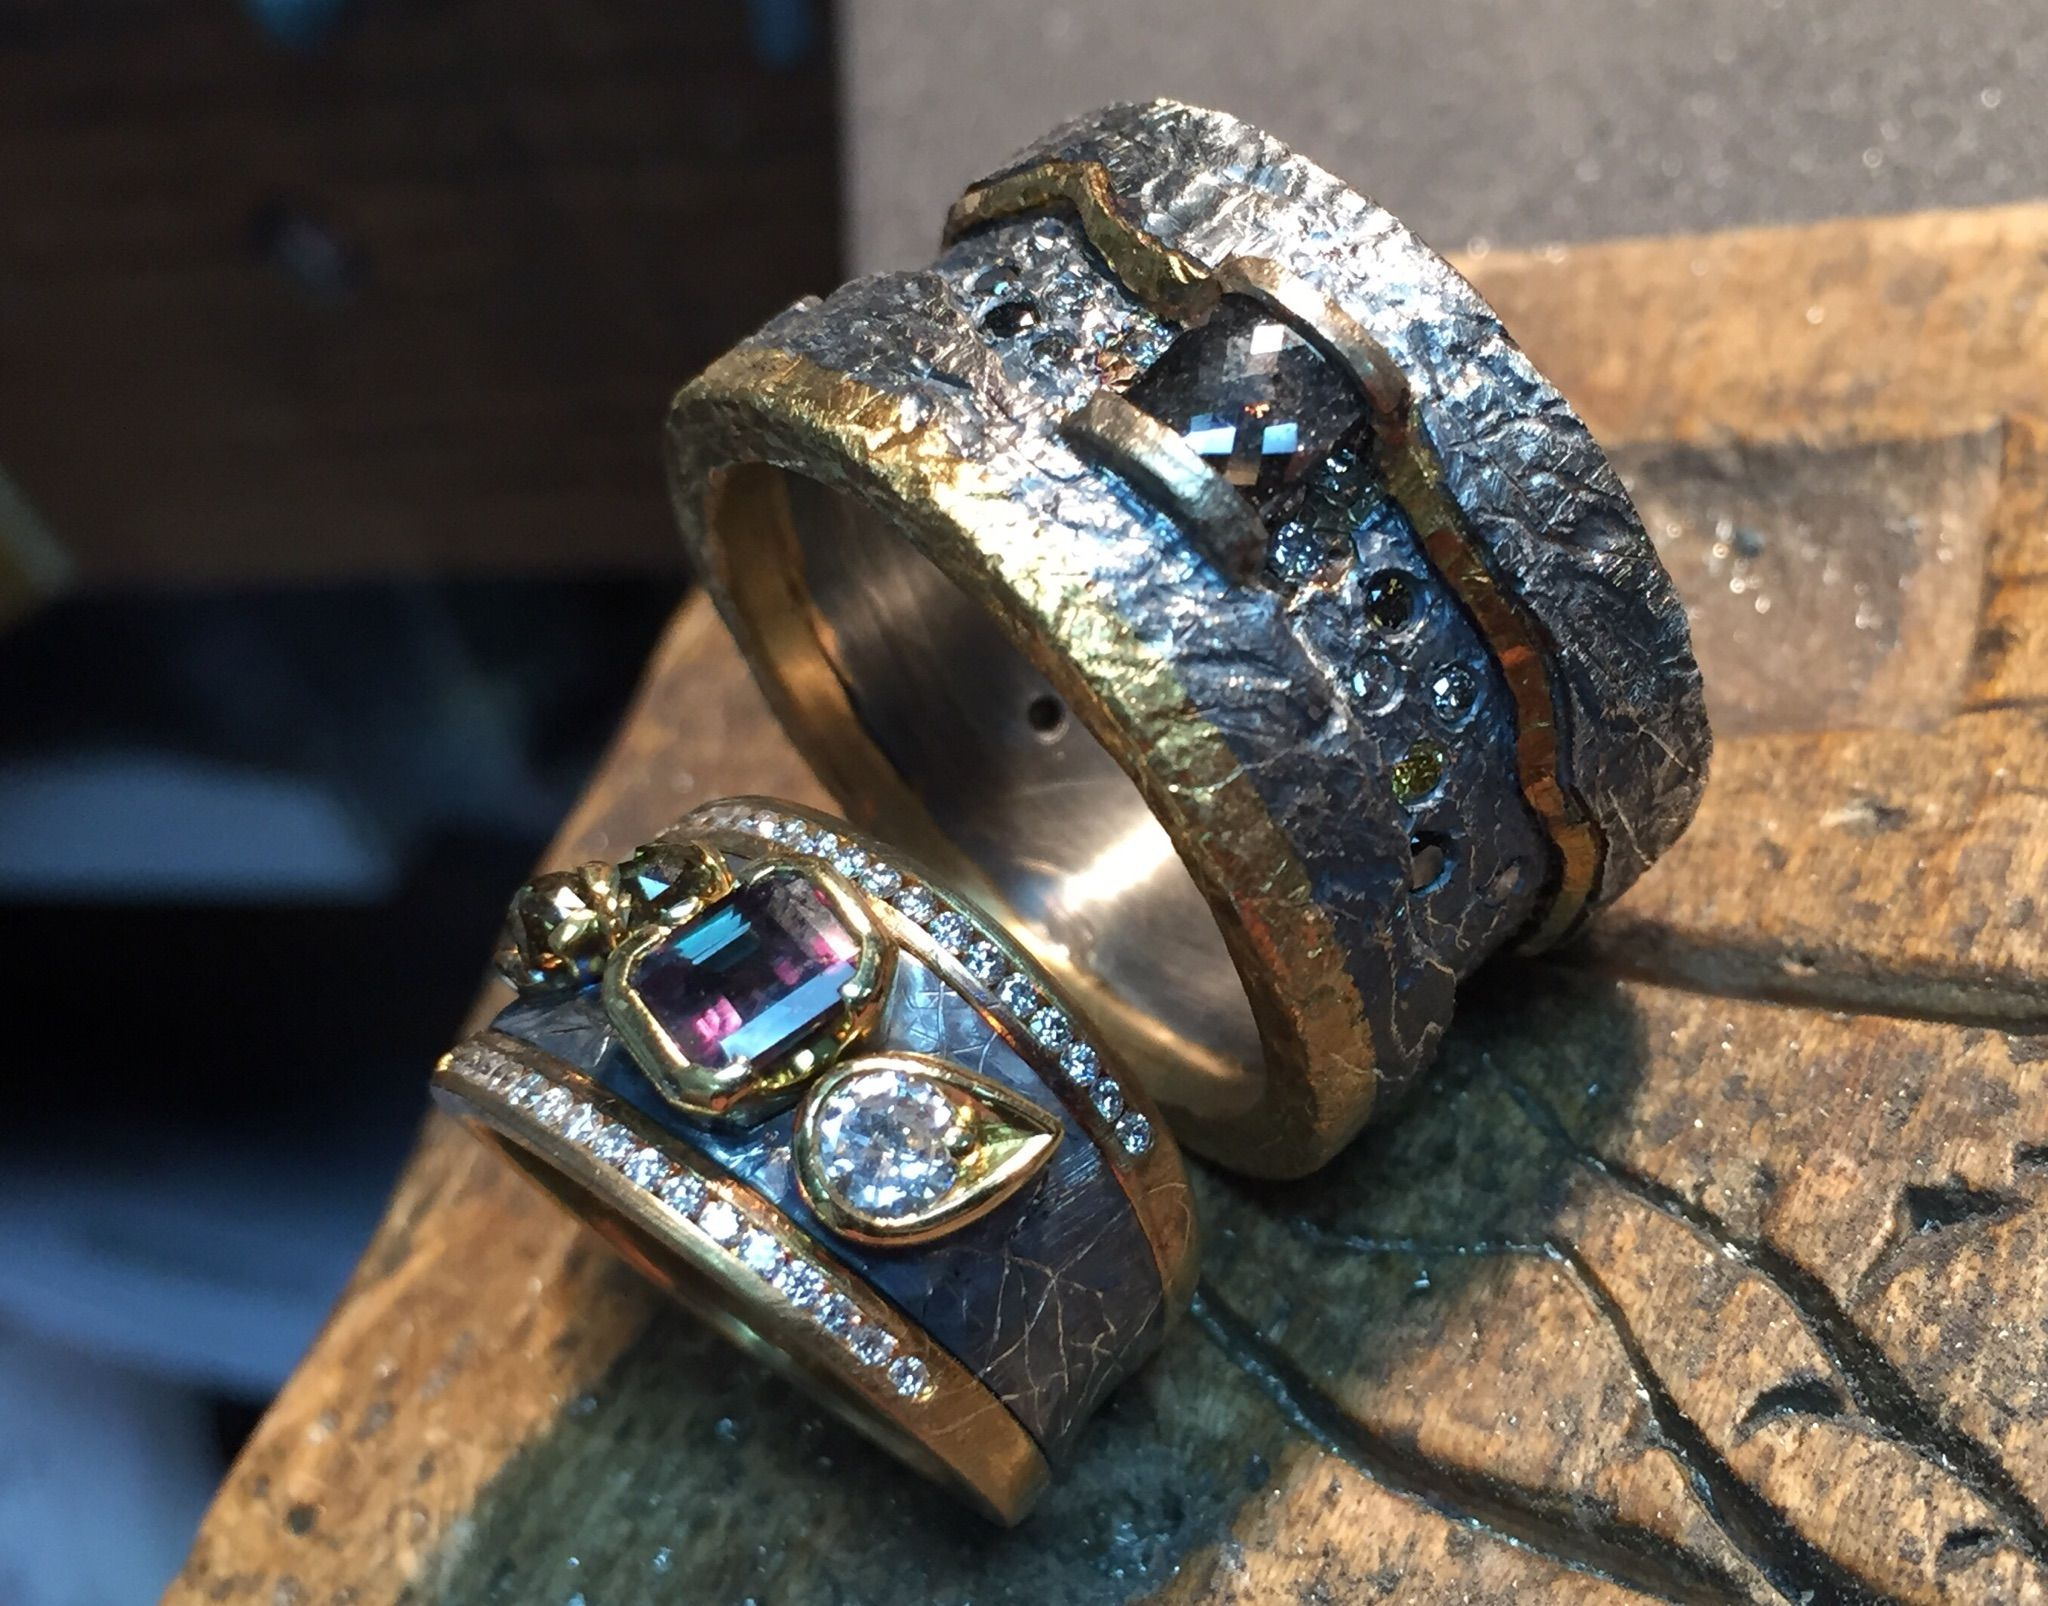 Found the perfect wedding/engagement rings for a man and a